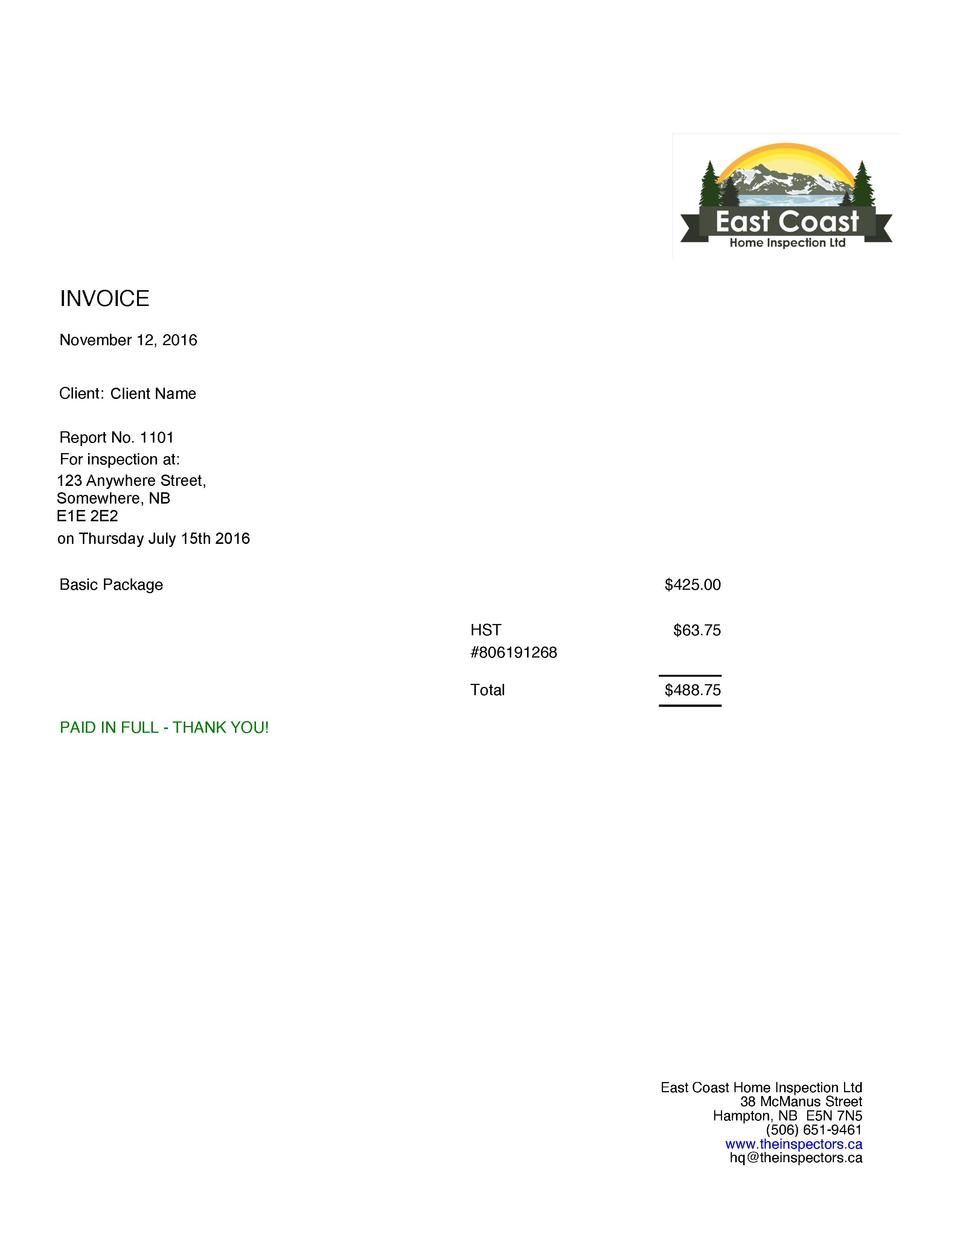 INVOICE November 12, 2016 Client  Scott ClientConnelly Name Report No. 1101 For inspection at  123 Street, 255Anywhere Roc...